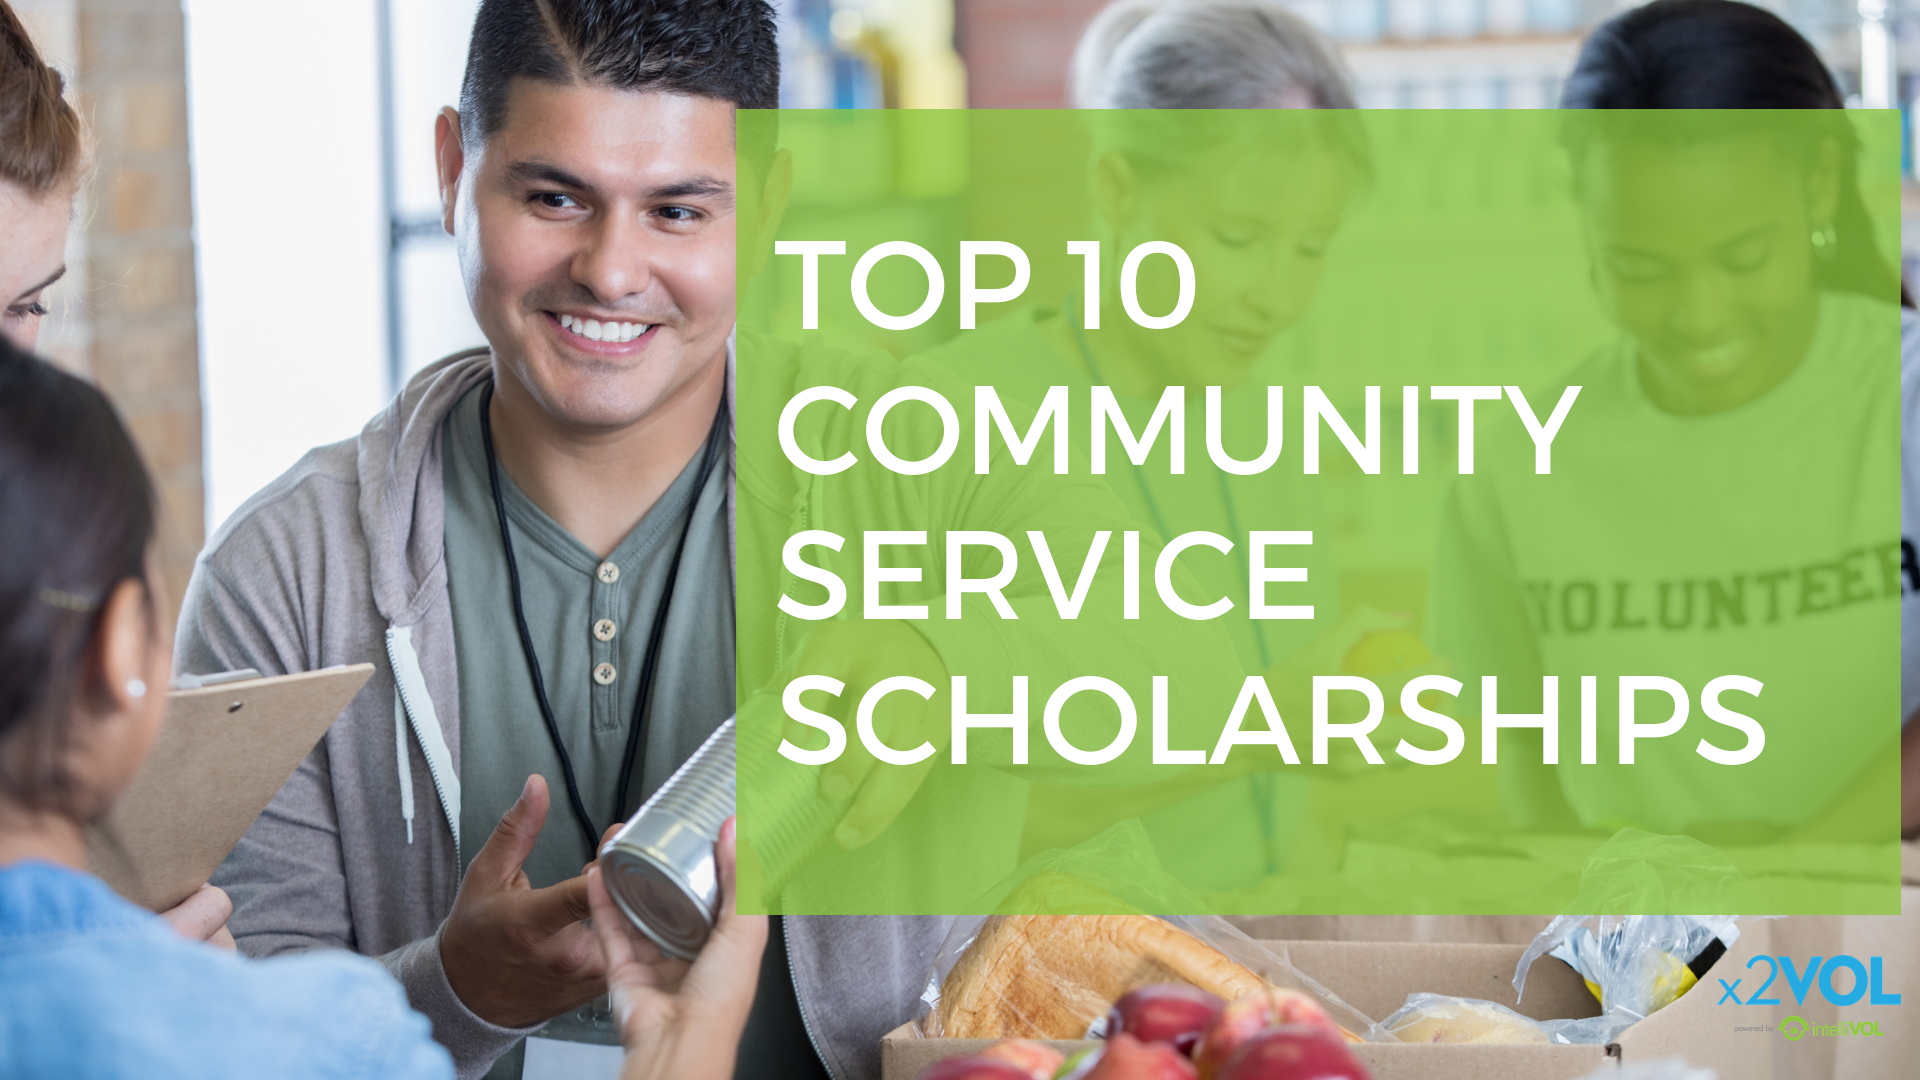 Top 10 Community Service Scholarships